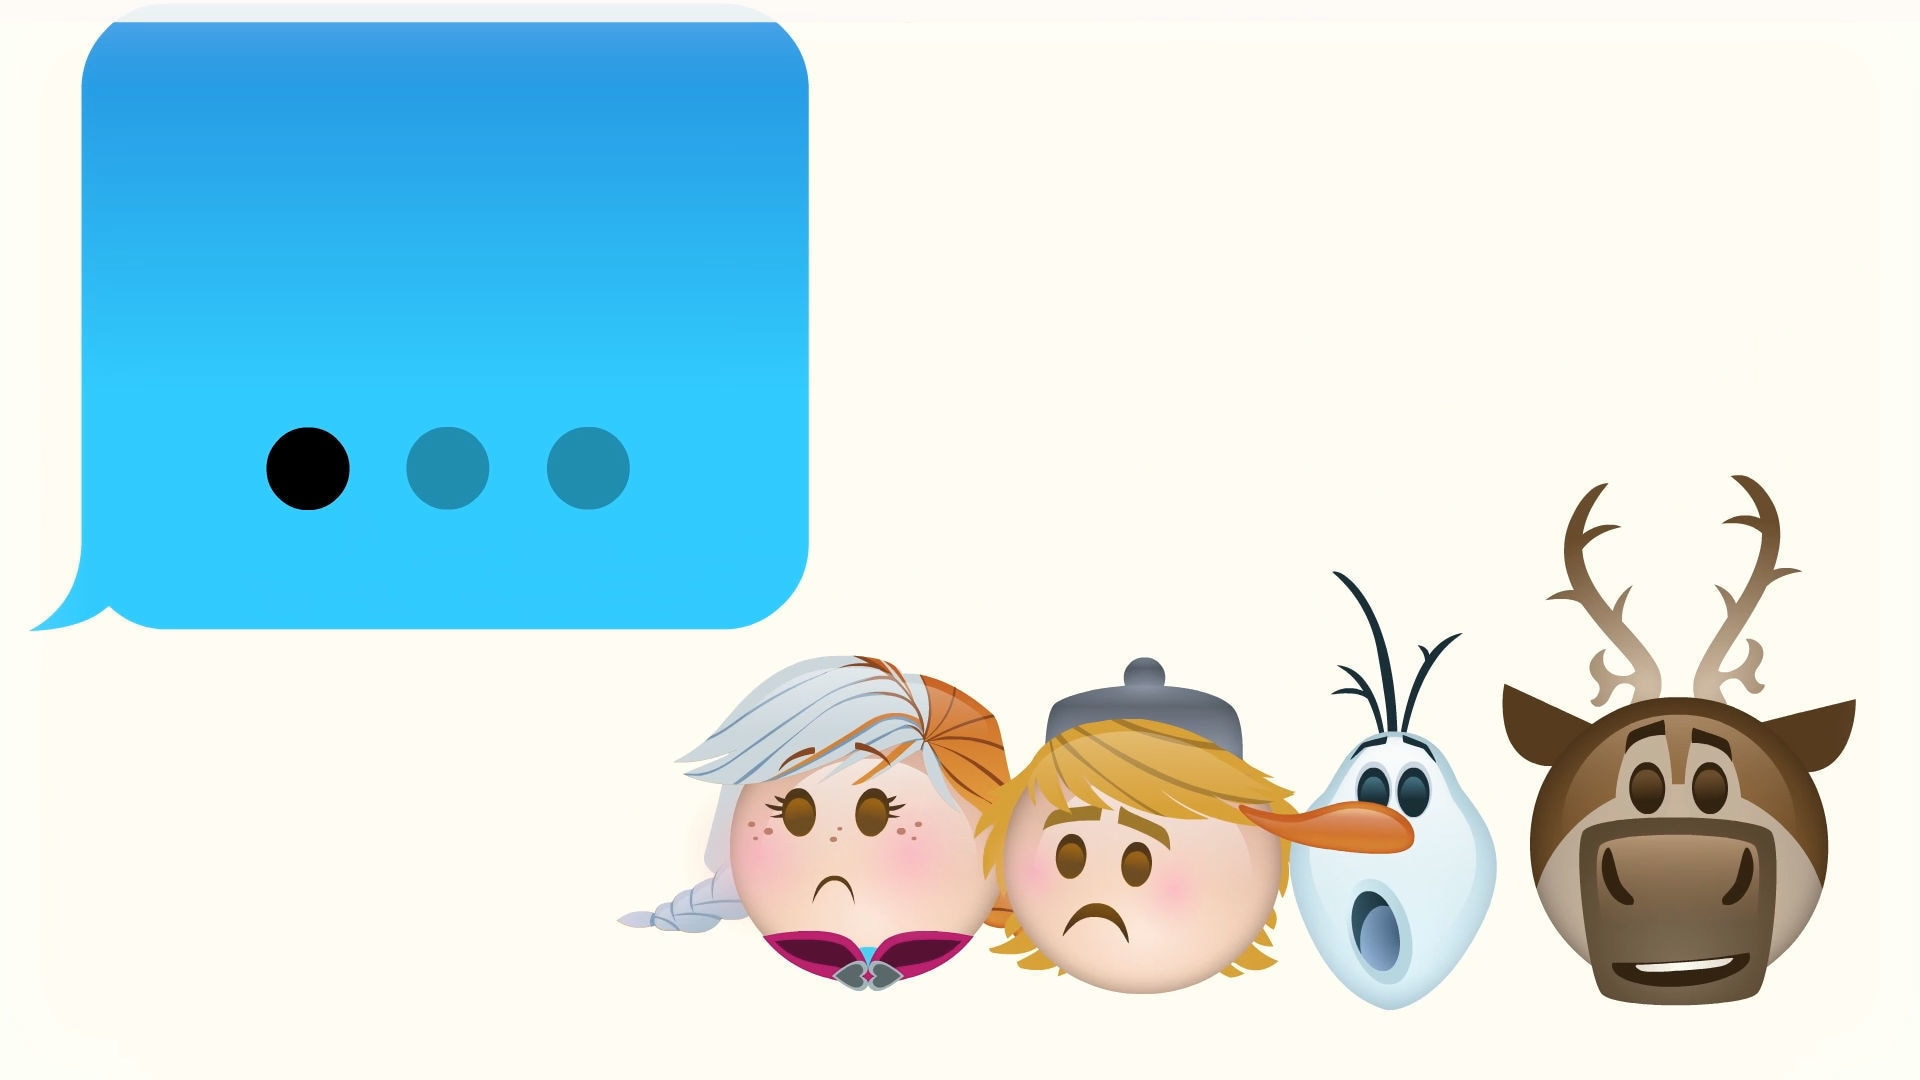 Disney's Frozen as Told by Emoji